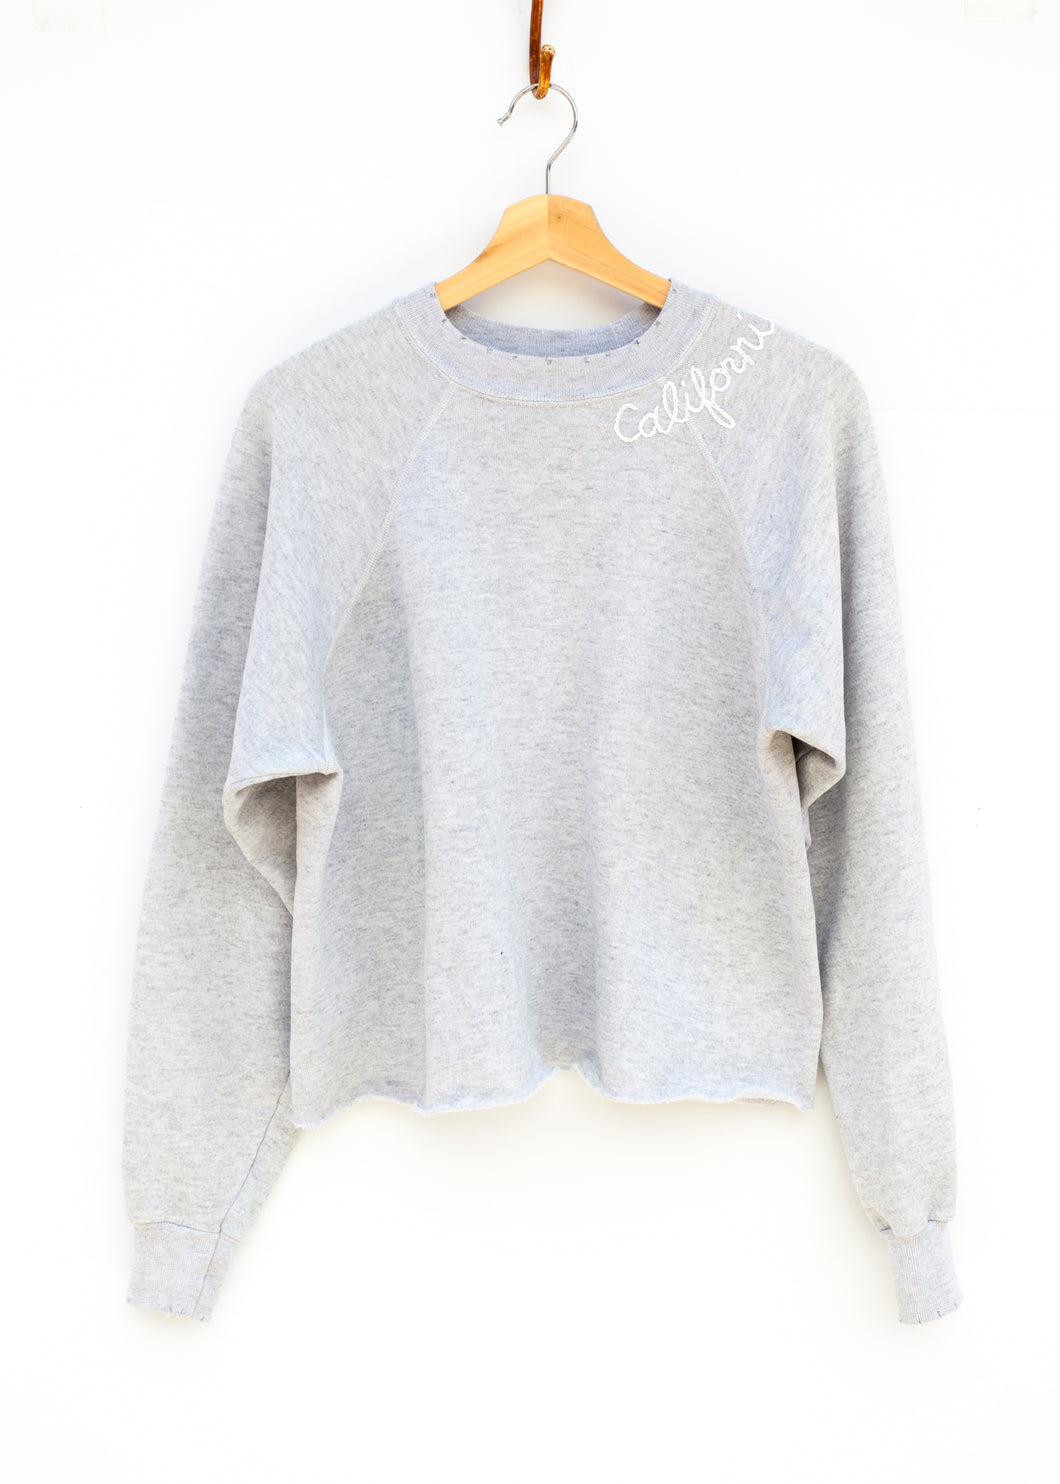 California Cropped Sweatshirt - Heather Grey